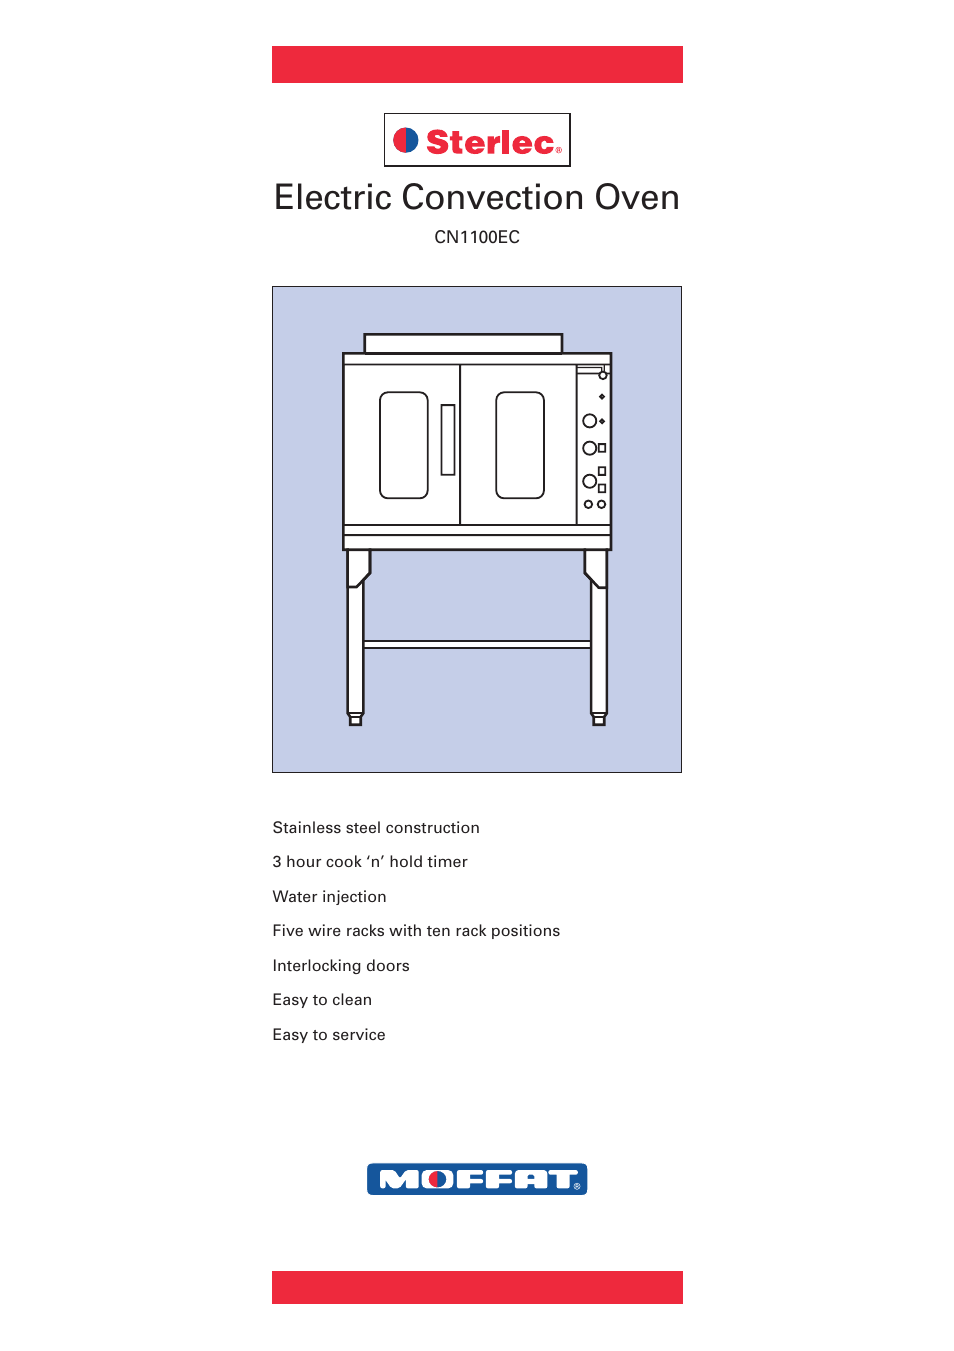 Moffat Wiring Diagram Library Dryer Sterlec Cn1100ec User Manual 2 Pages